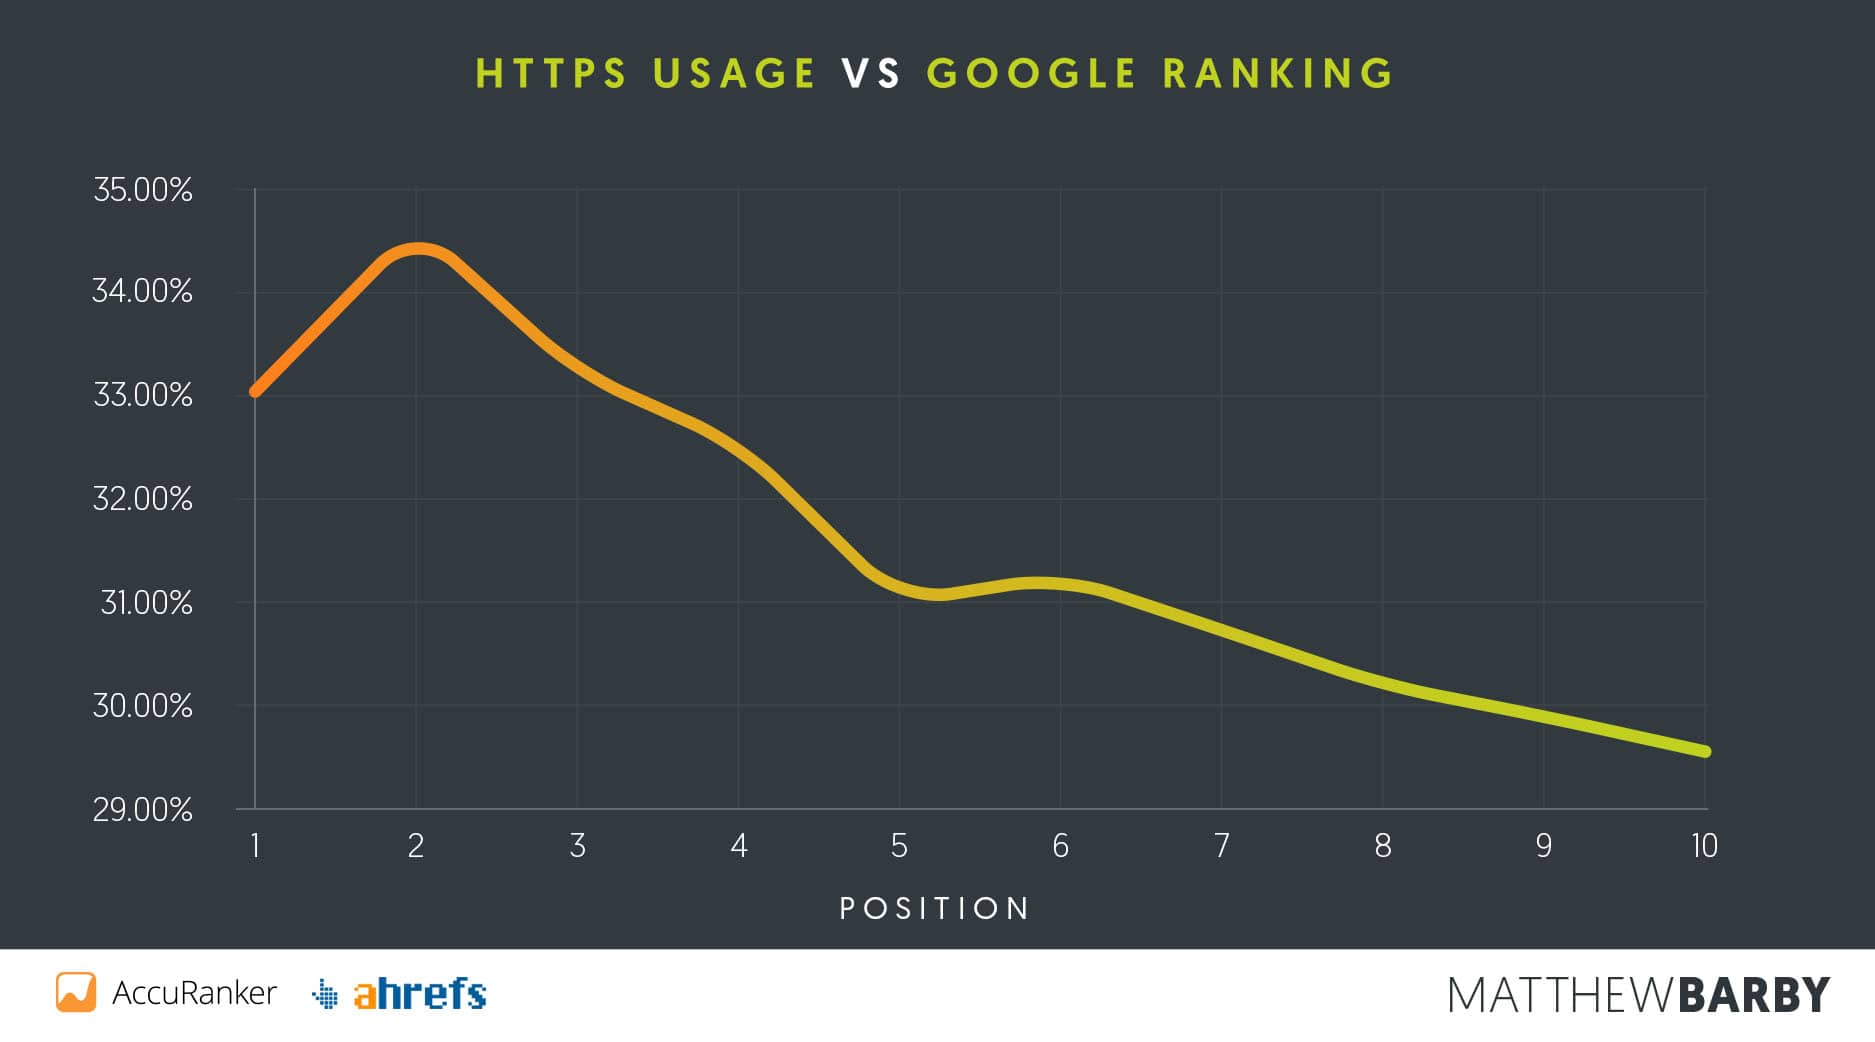 https usage vs google ranking